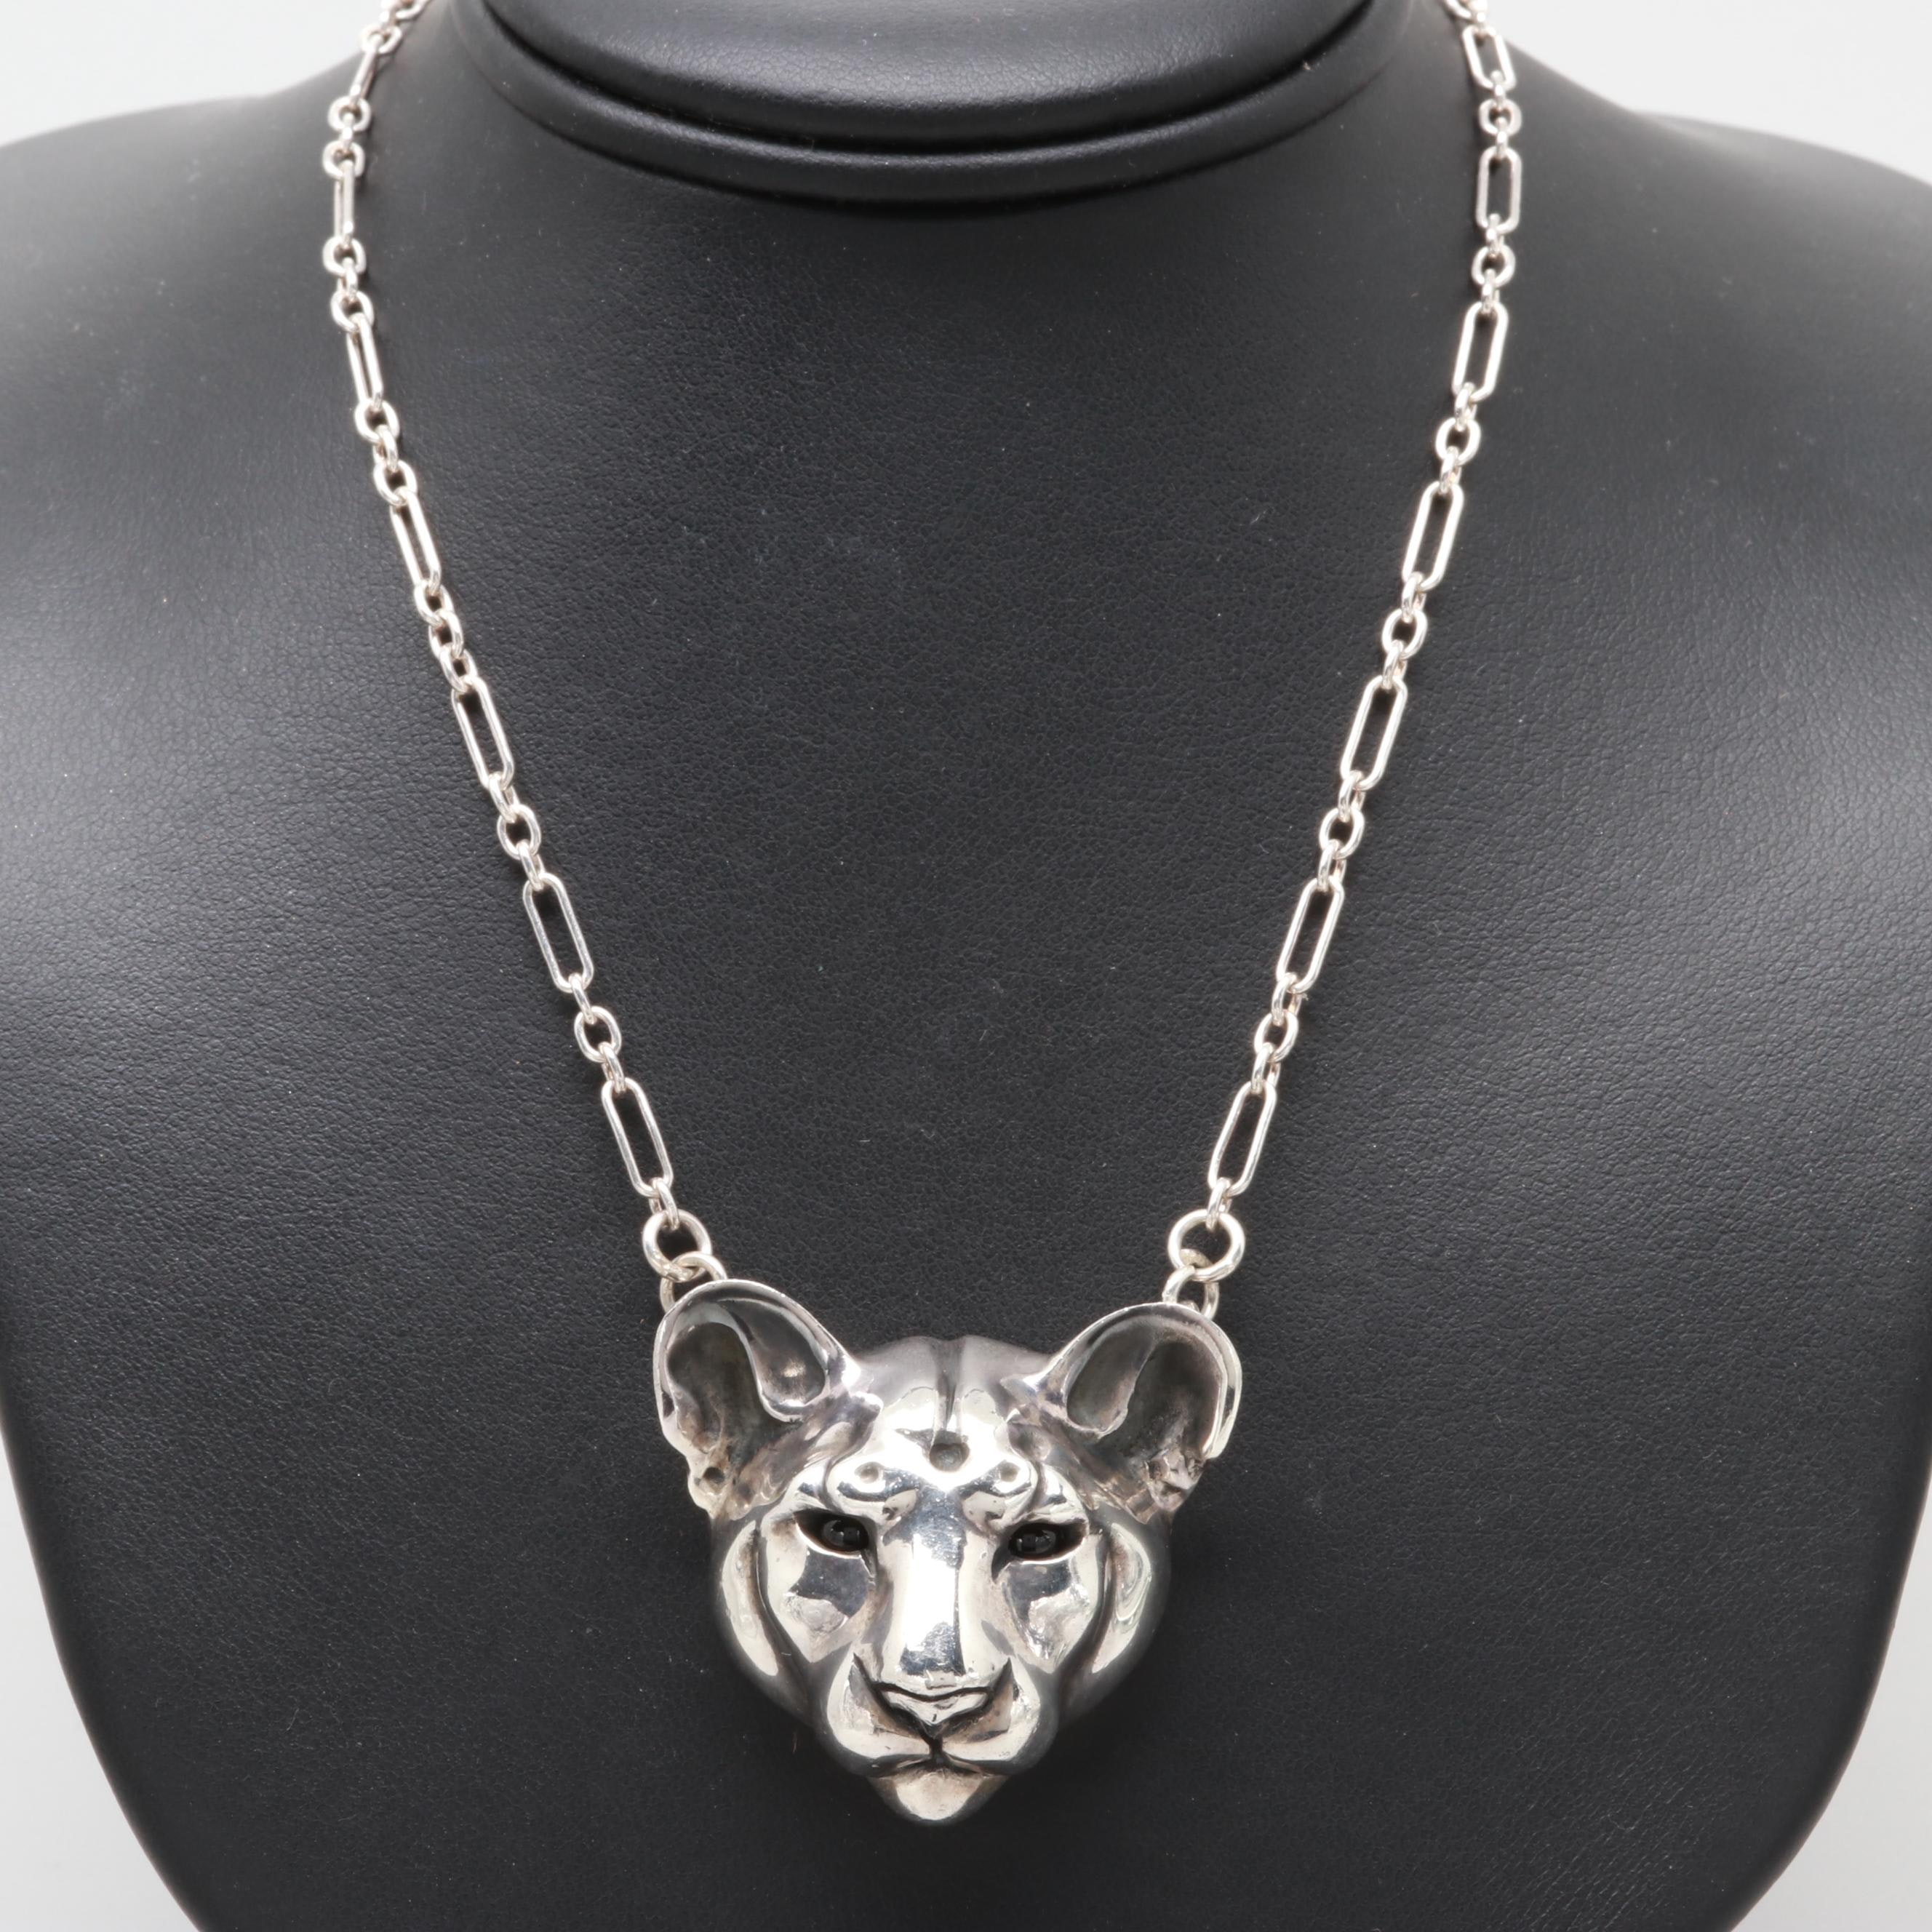 Brooke Stone Sterling Silver Black Onyx Mountain Lion Totem Necklace